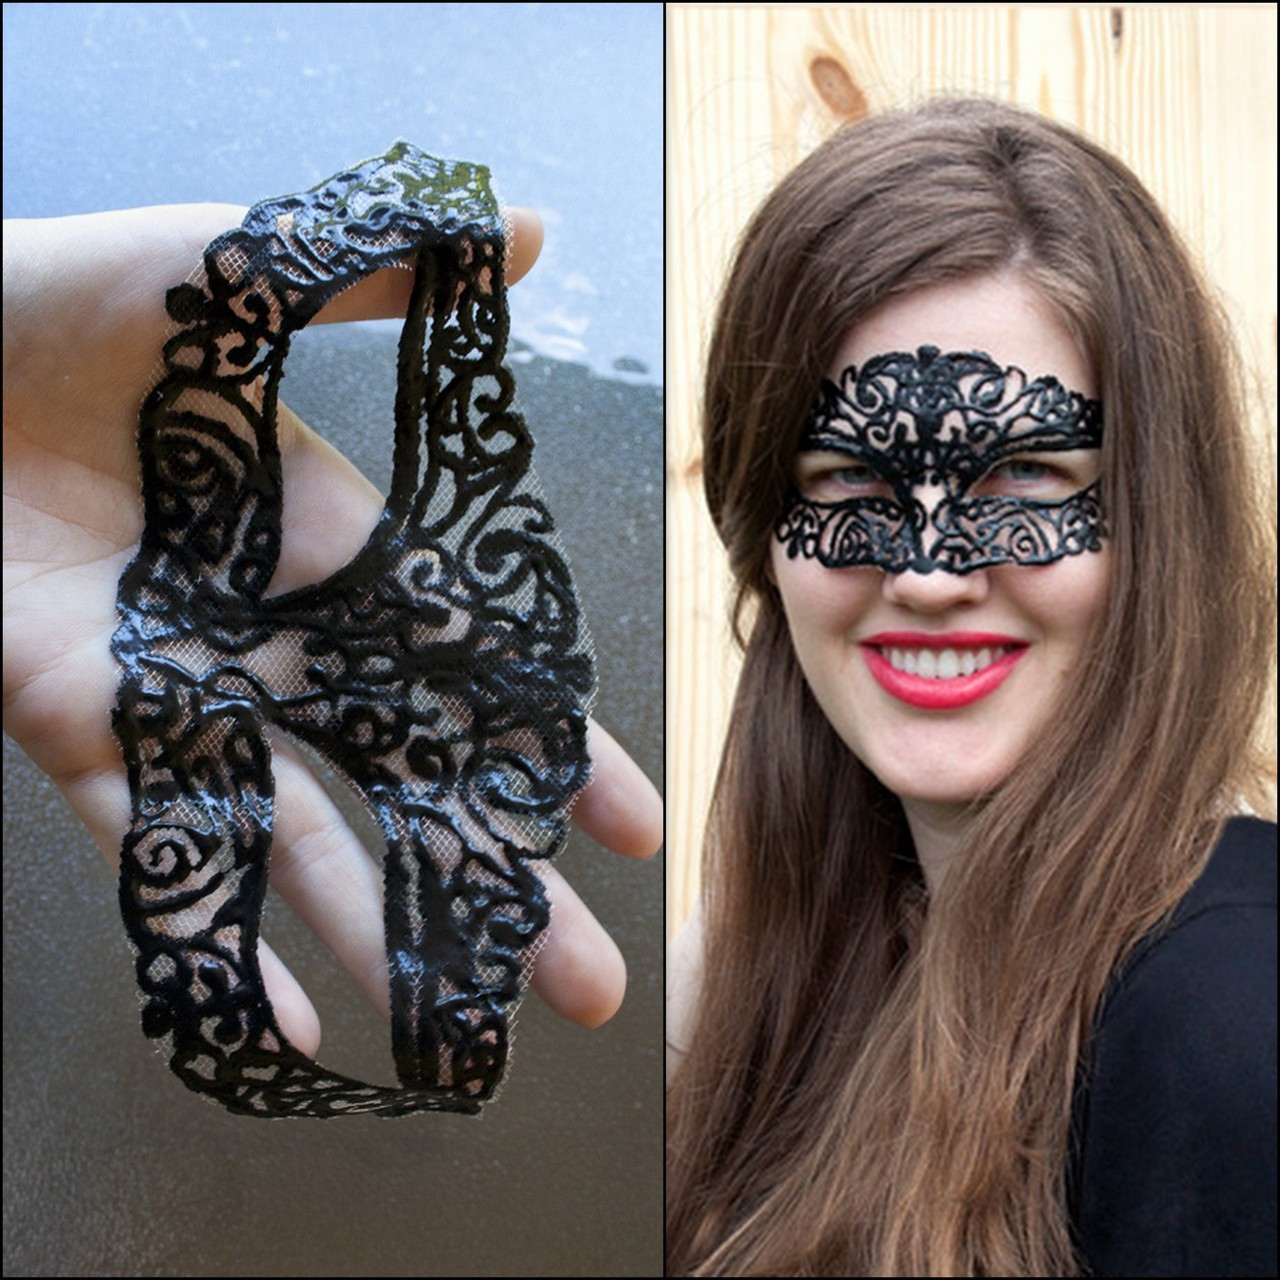 Best ideas about DIY Masquerade Mask . Save or Pin True Blue Me & You DIYs for Creatives • DIY Masquerade Now.